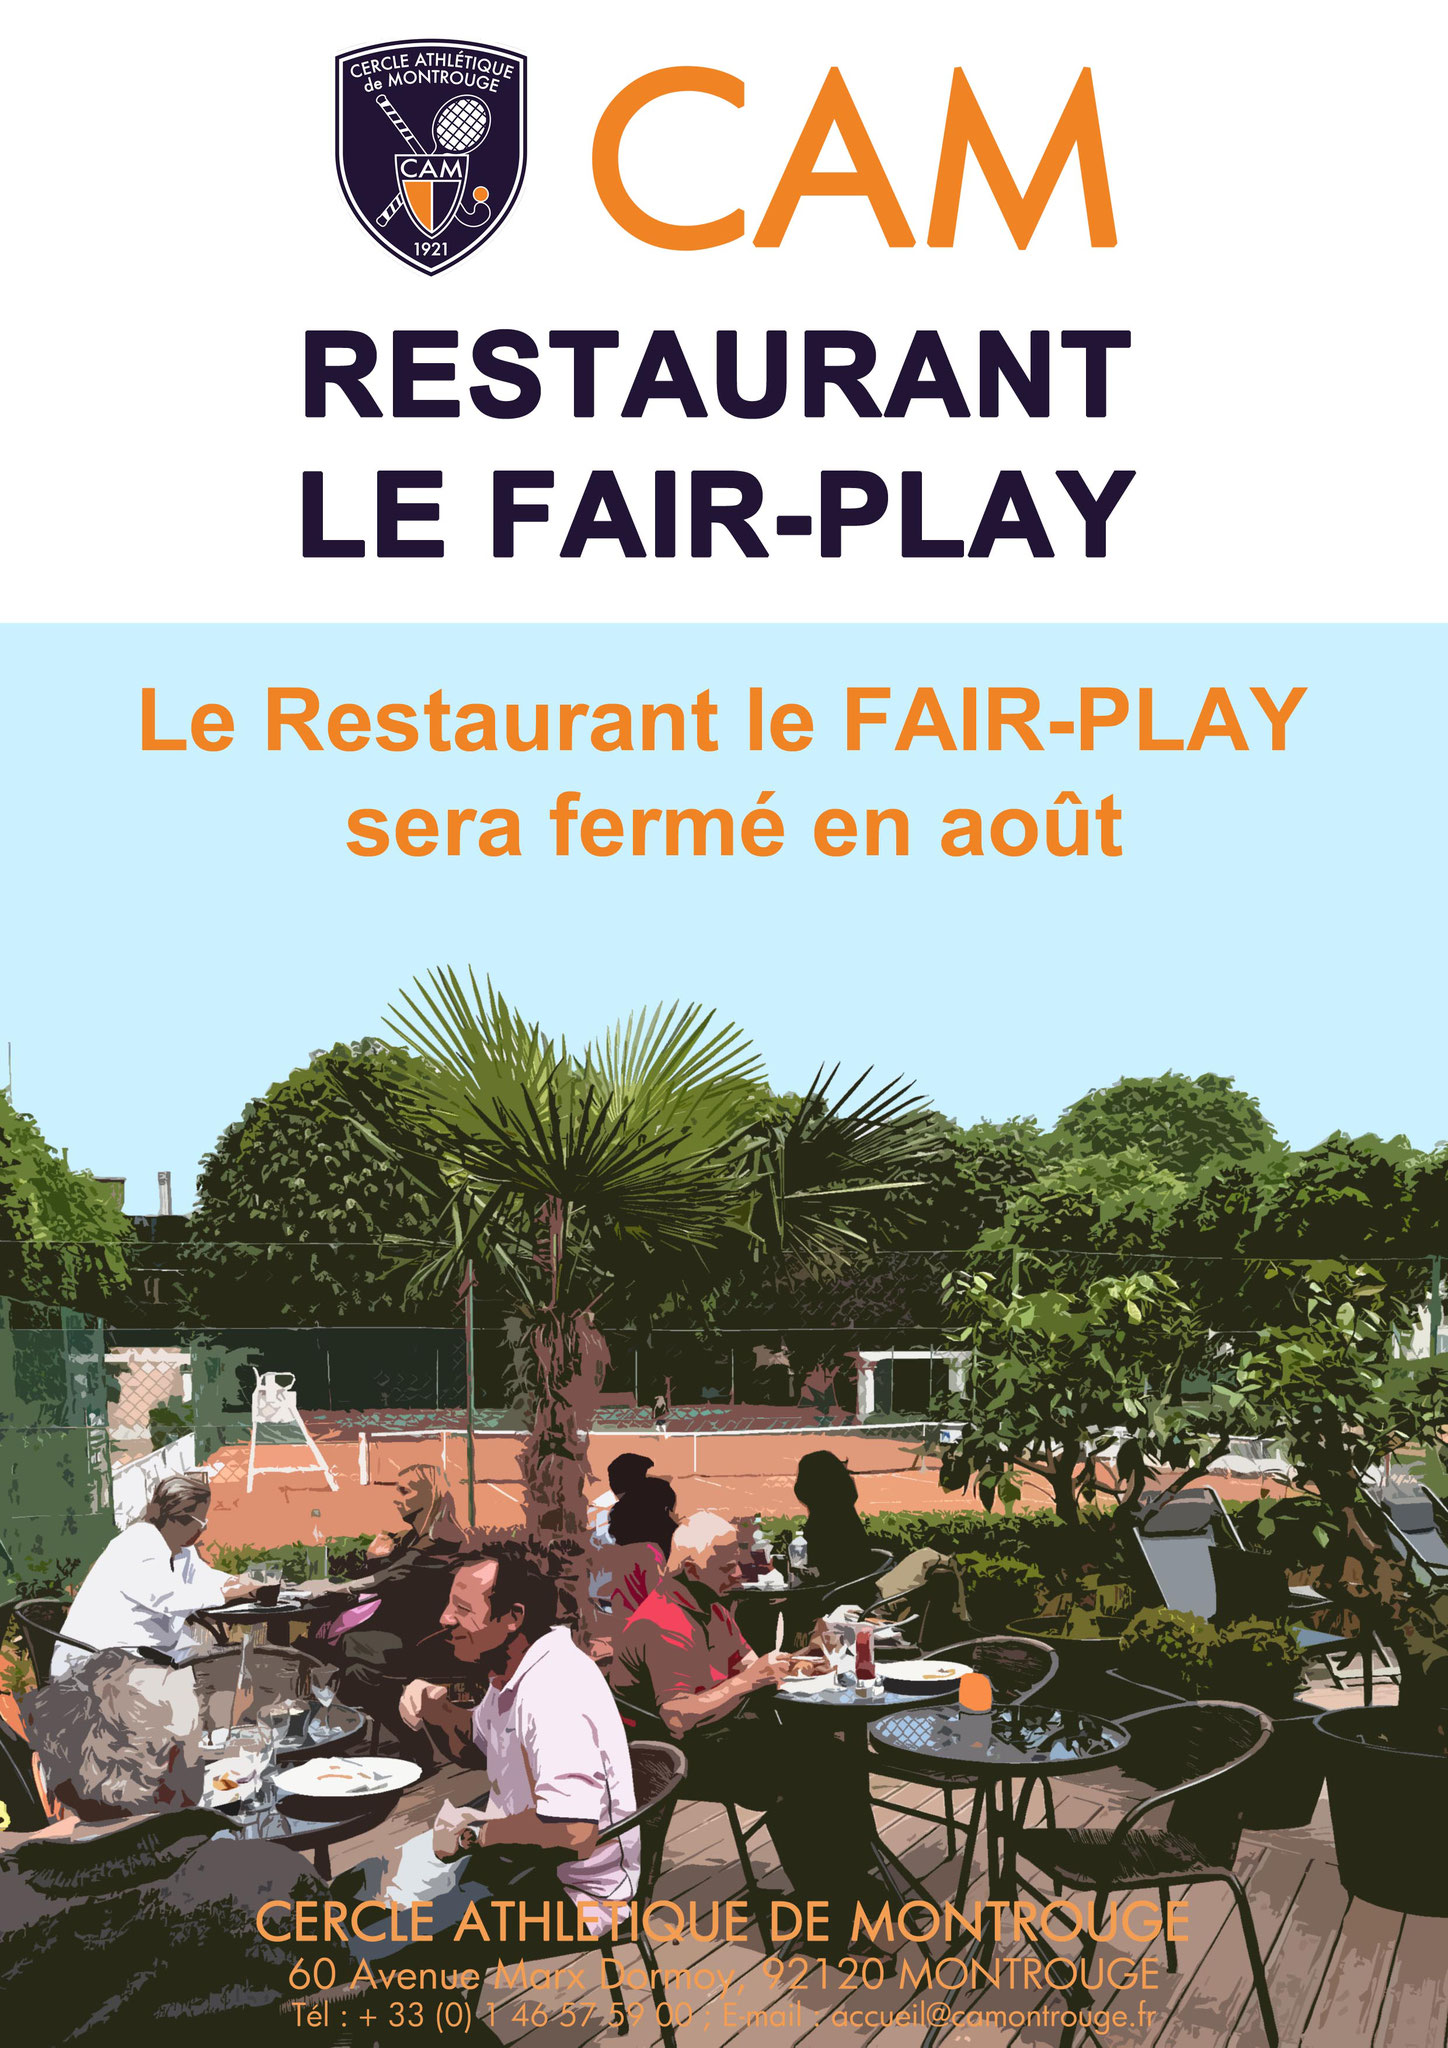 Restaurant Le Fair-Play fermé en août